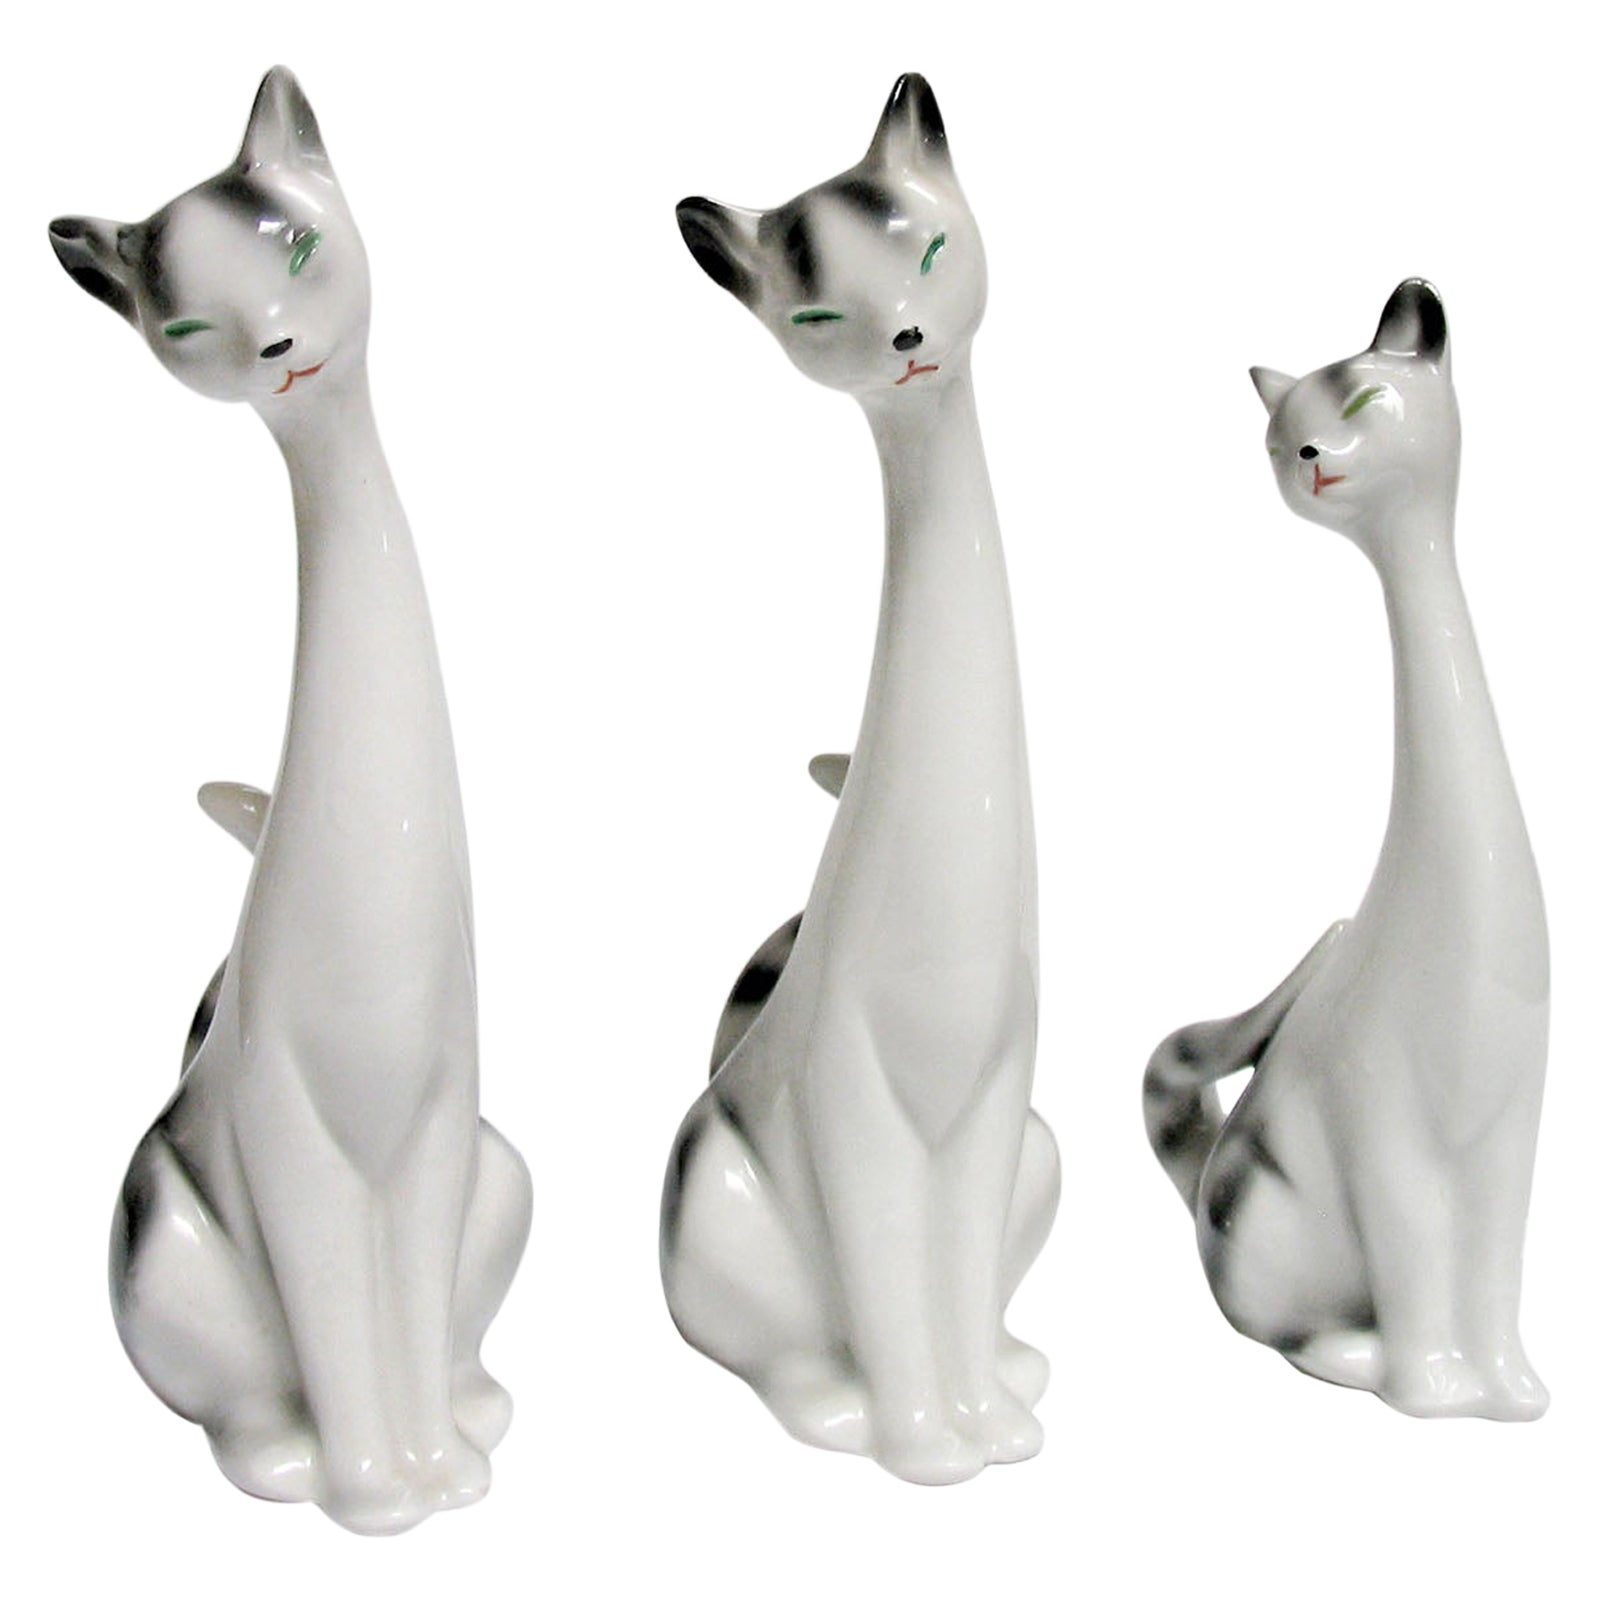 Mid-Century Modern Decorative Ceramic Cats, Sweden, 1970s